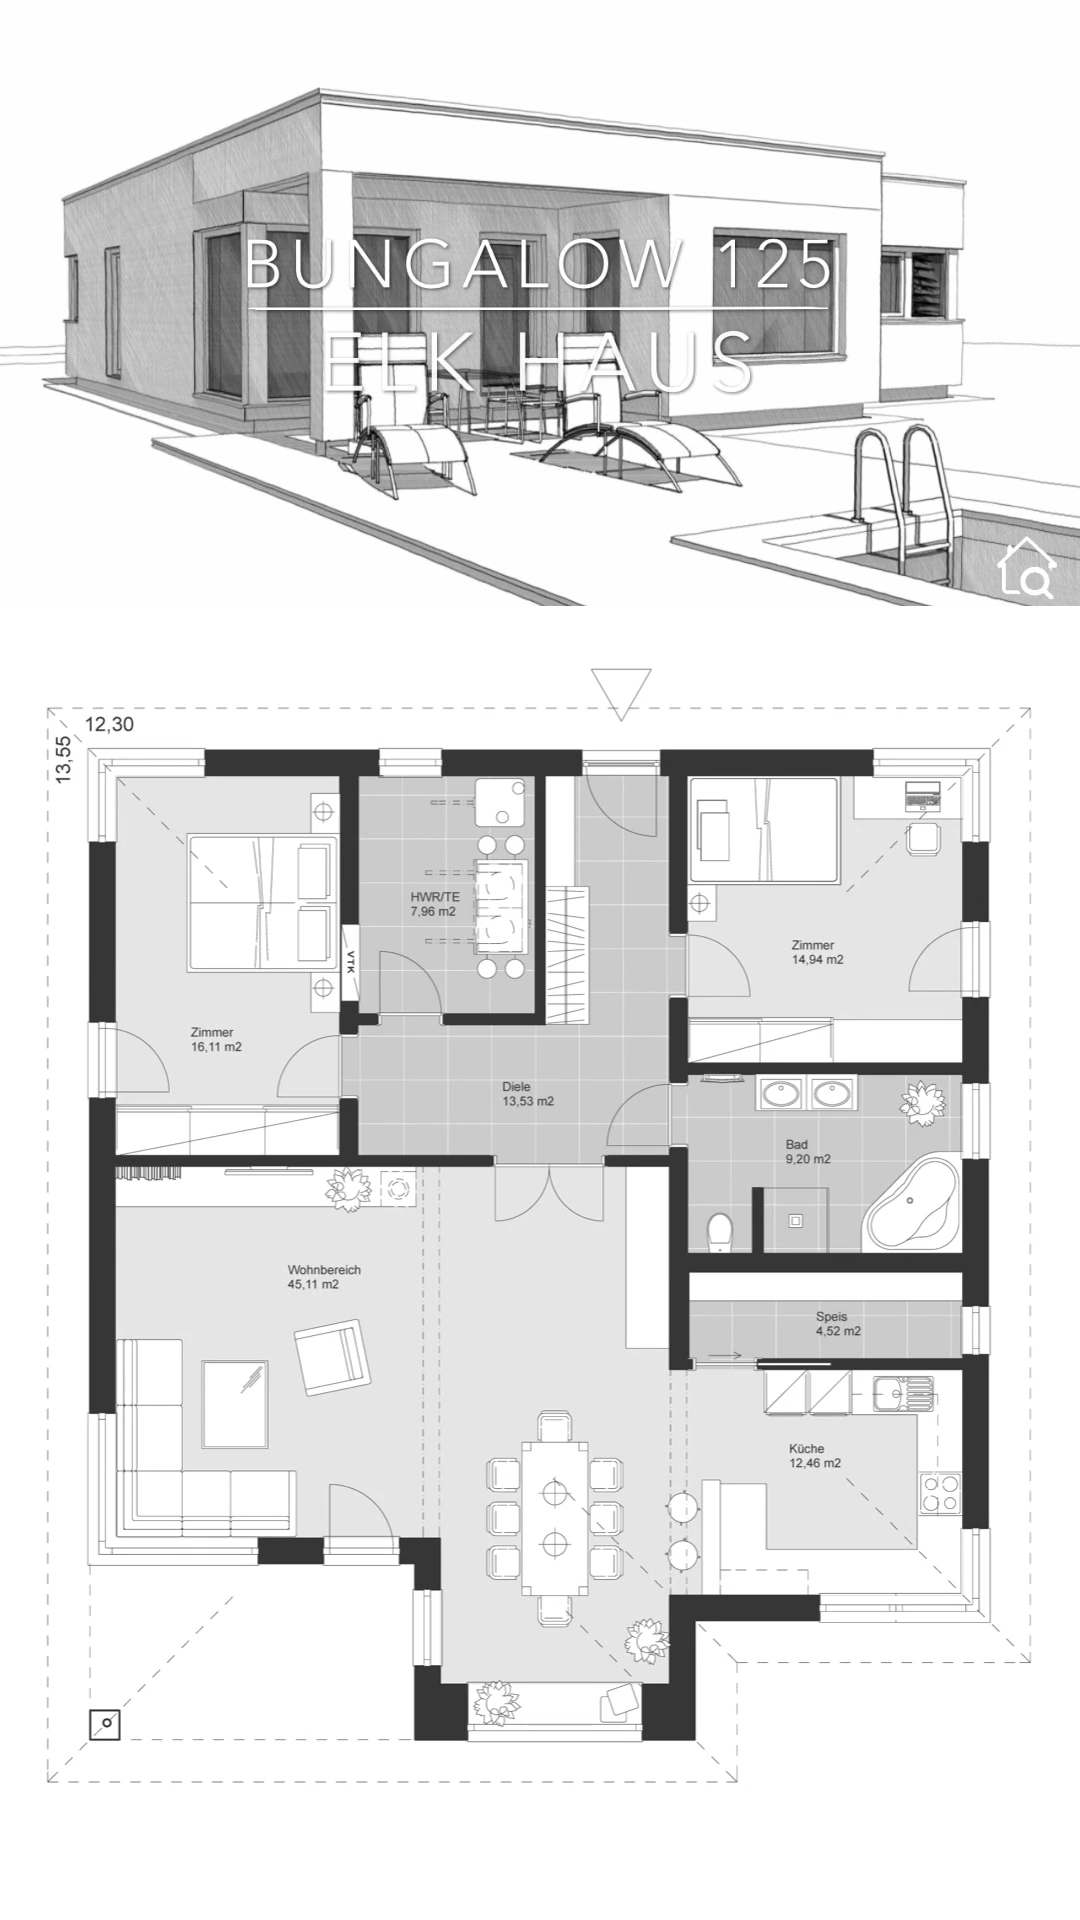 Prefab Bungalow House Floor Plan Modern With Flat Roof Architecture In Bauhaus Style Architec Bungalow House Floor Plans Modern Architecture Design Floor Plans